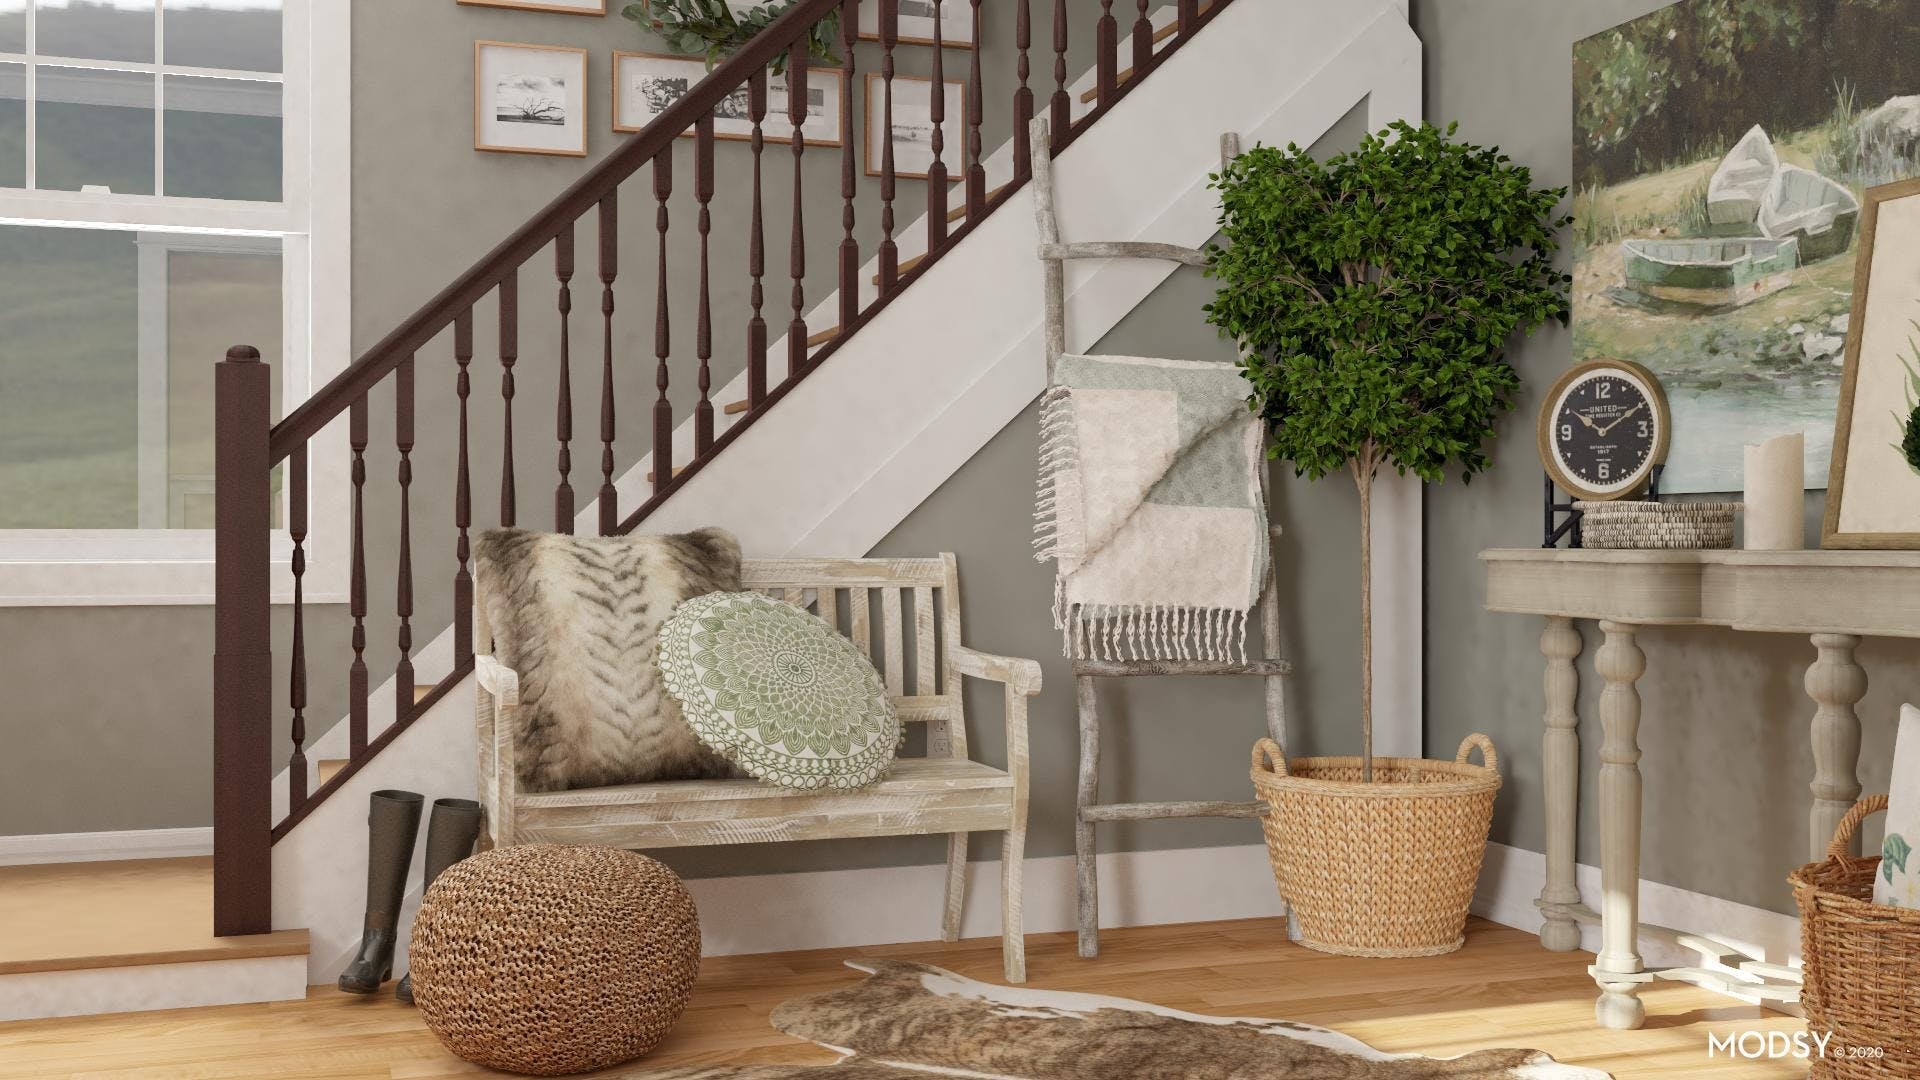 Seating Options in a Rustic Entryway